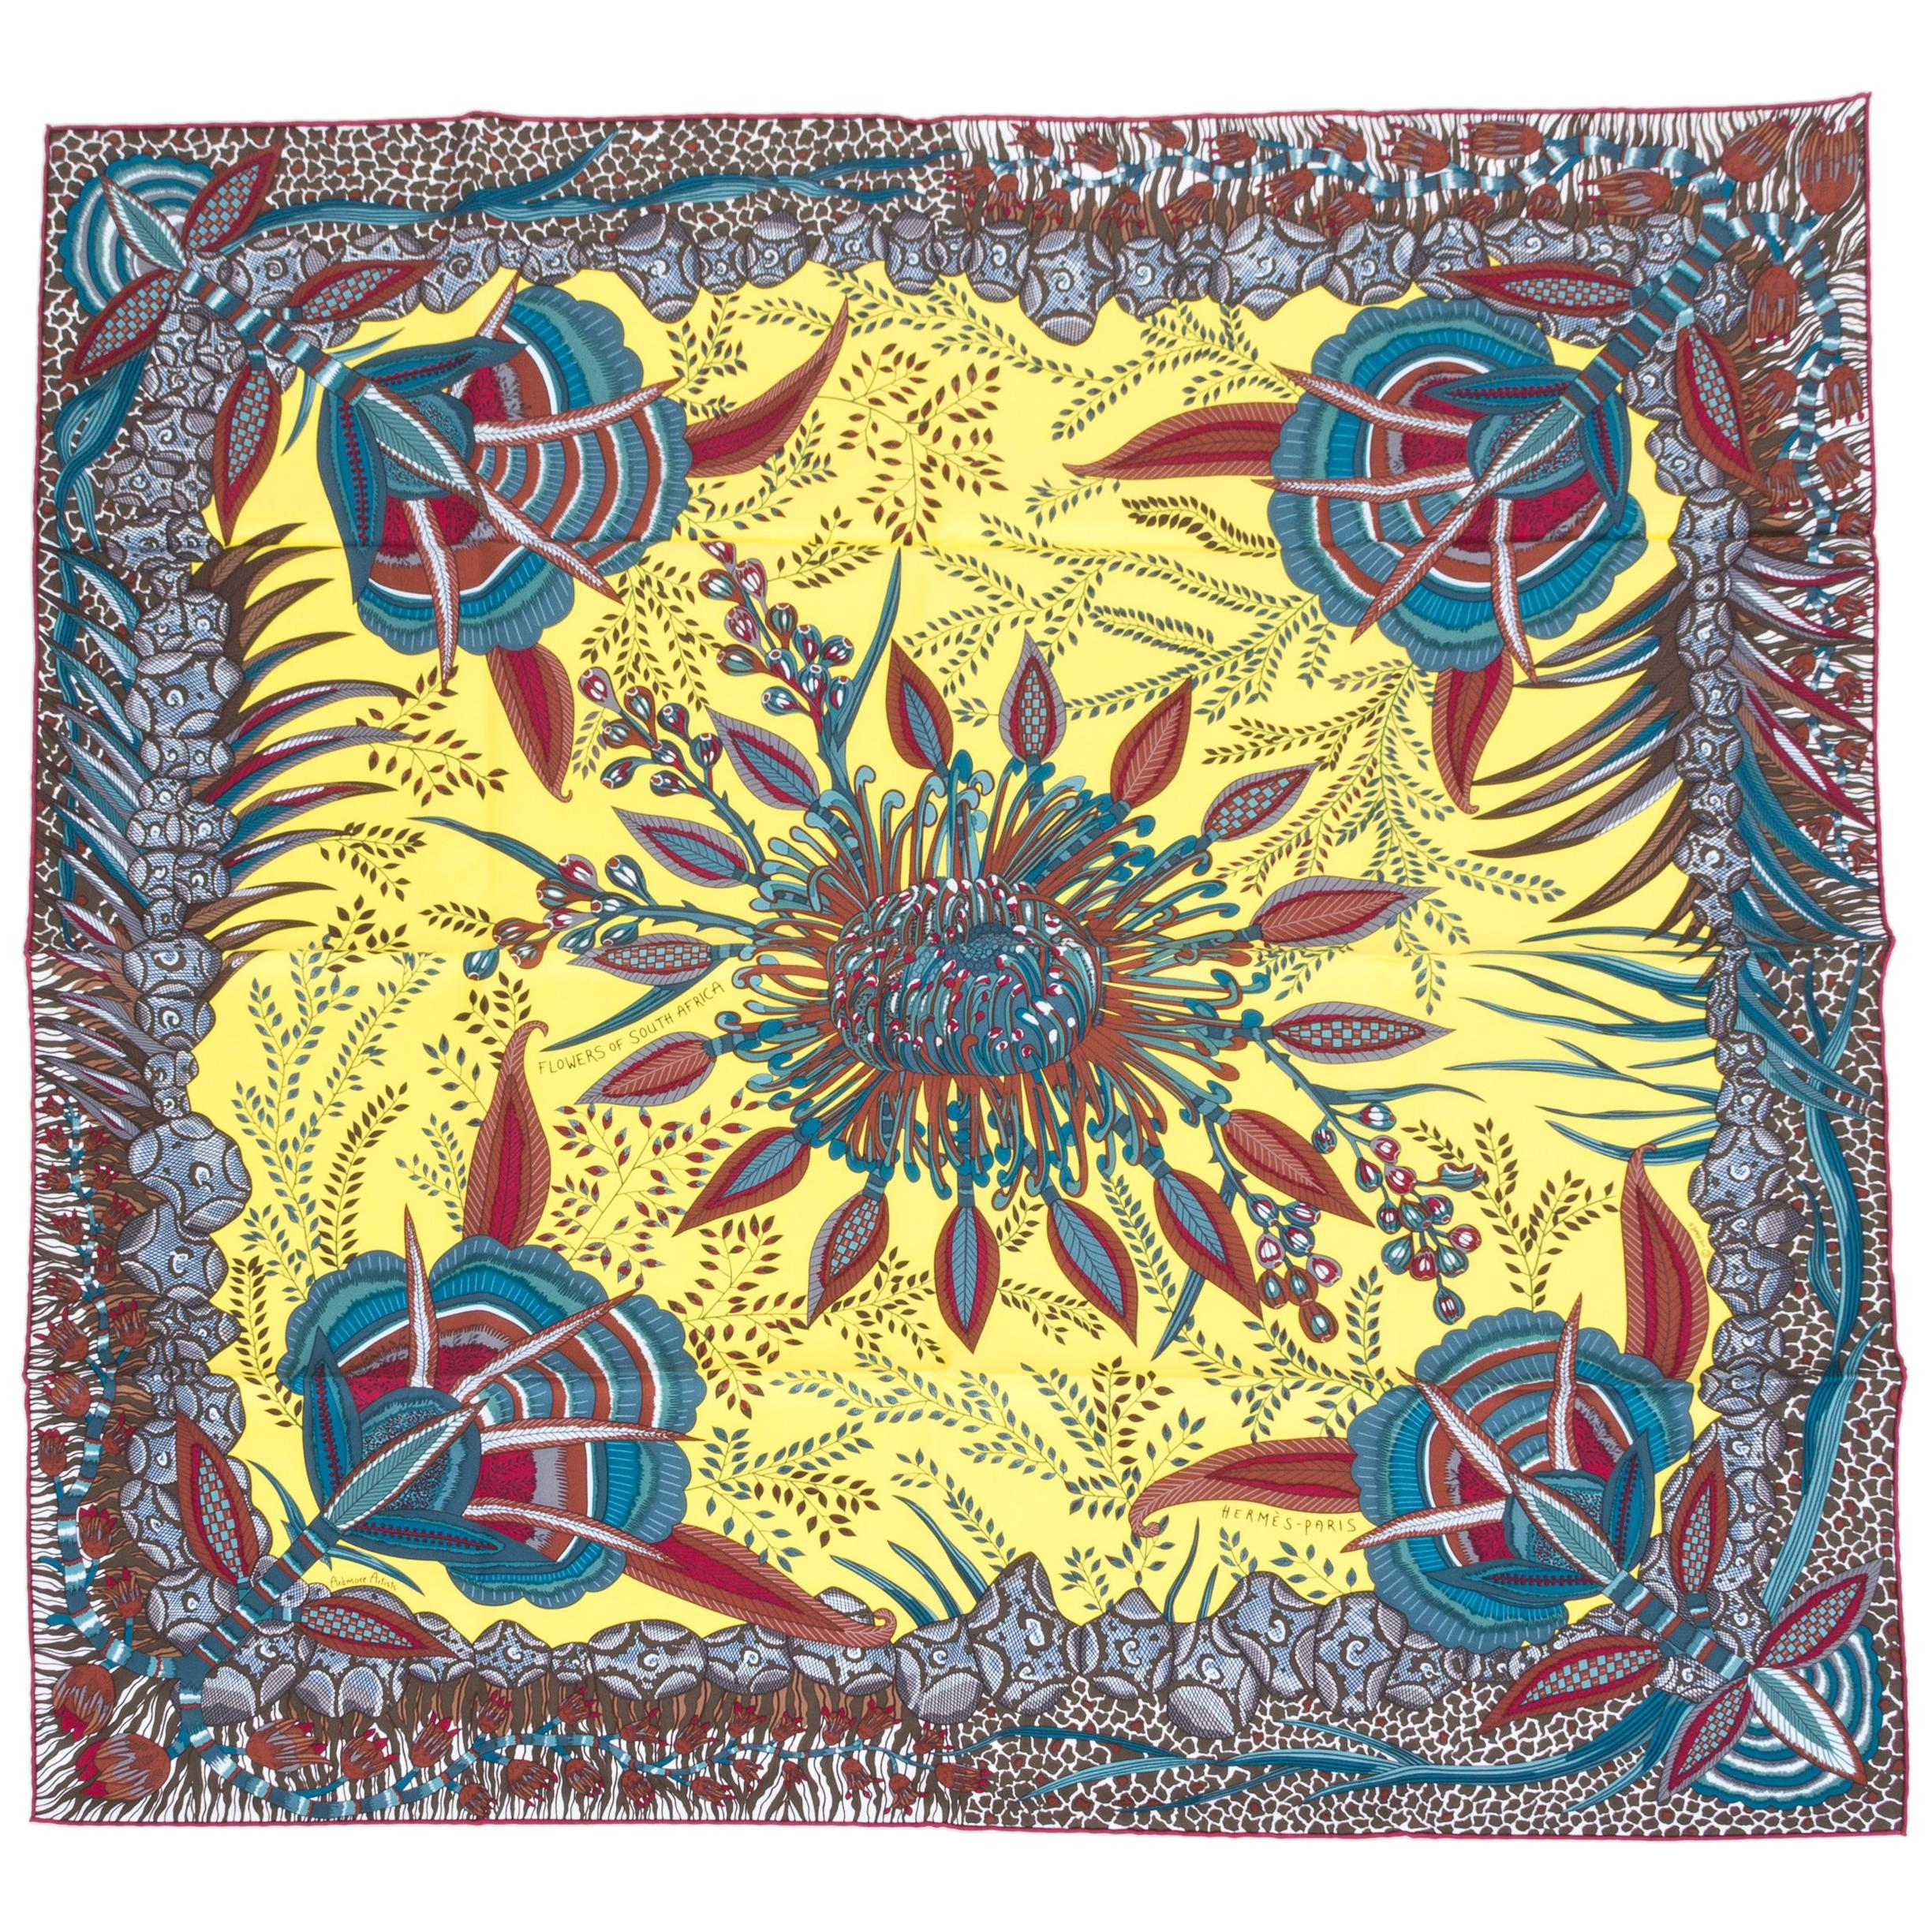 Hermes Flowers of South Africa Silk Scarf